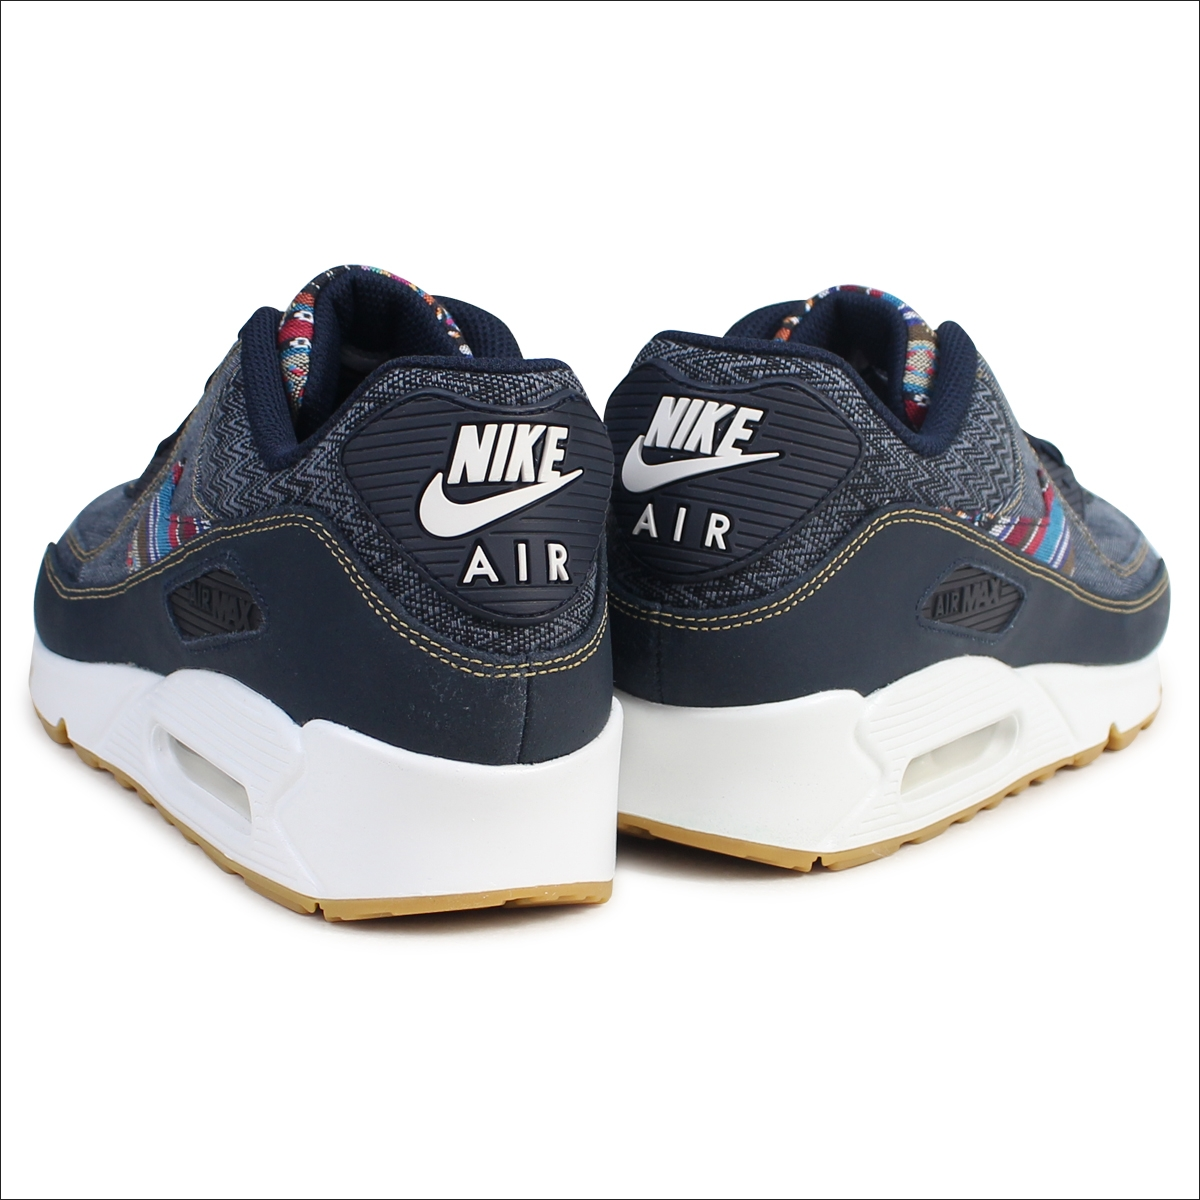 cheap for discount 11fc1 7ed40 Nike NIKE Air Max 90 sneakers AIR MAX 90 PREMIUM AFRO PUNK PACK 700,155-402  men s shoes navy